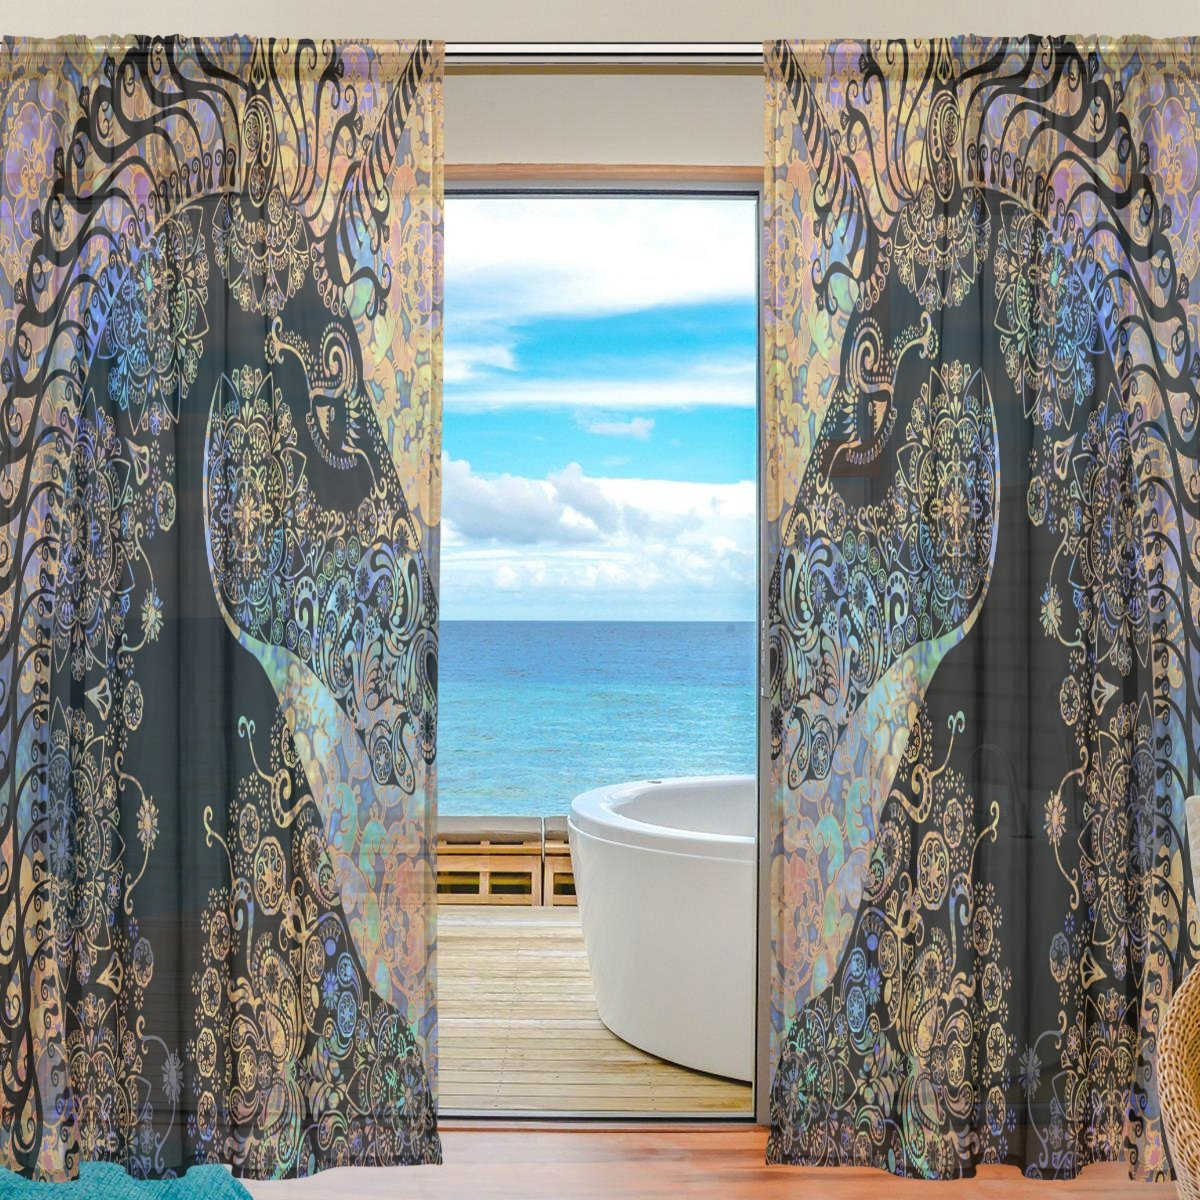 SEULIFE Window Sheer Curtain, Tribal Ethnic Floral Animal Unicorn Voile Curtain Drapes for Door Kitchen Living Room Bedroom 55x84 inches 2 Panels